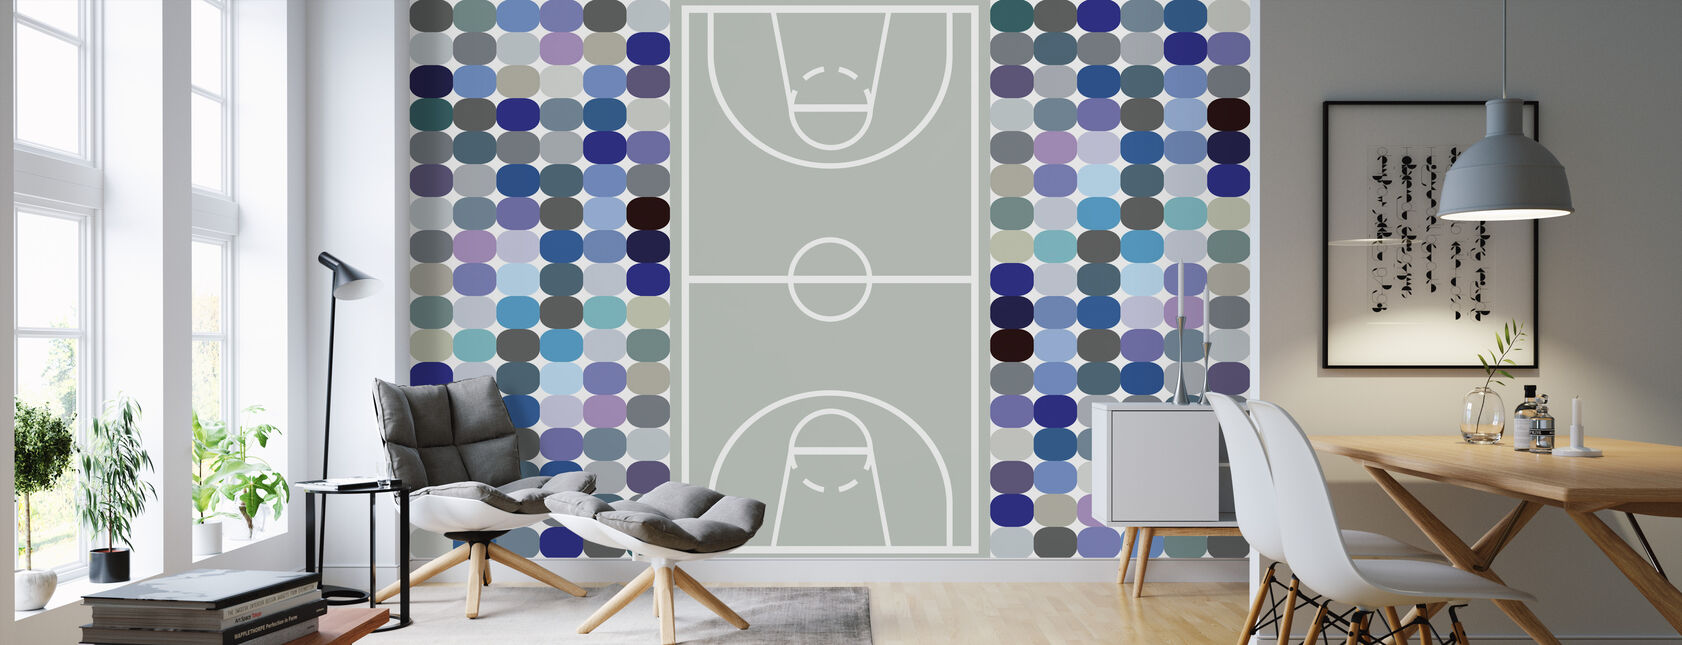 Basketball - Wallpaper - Living Room